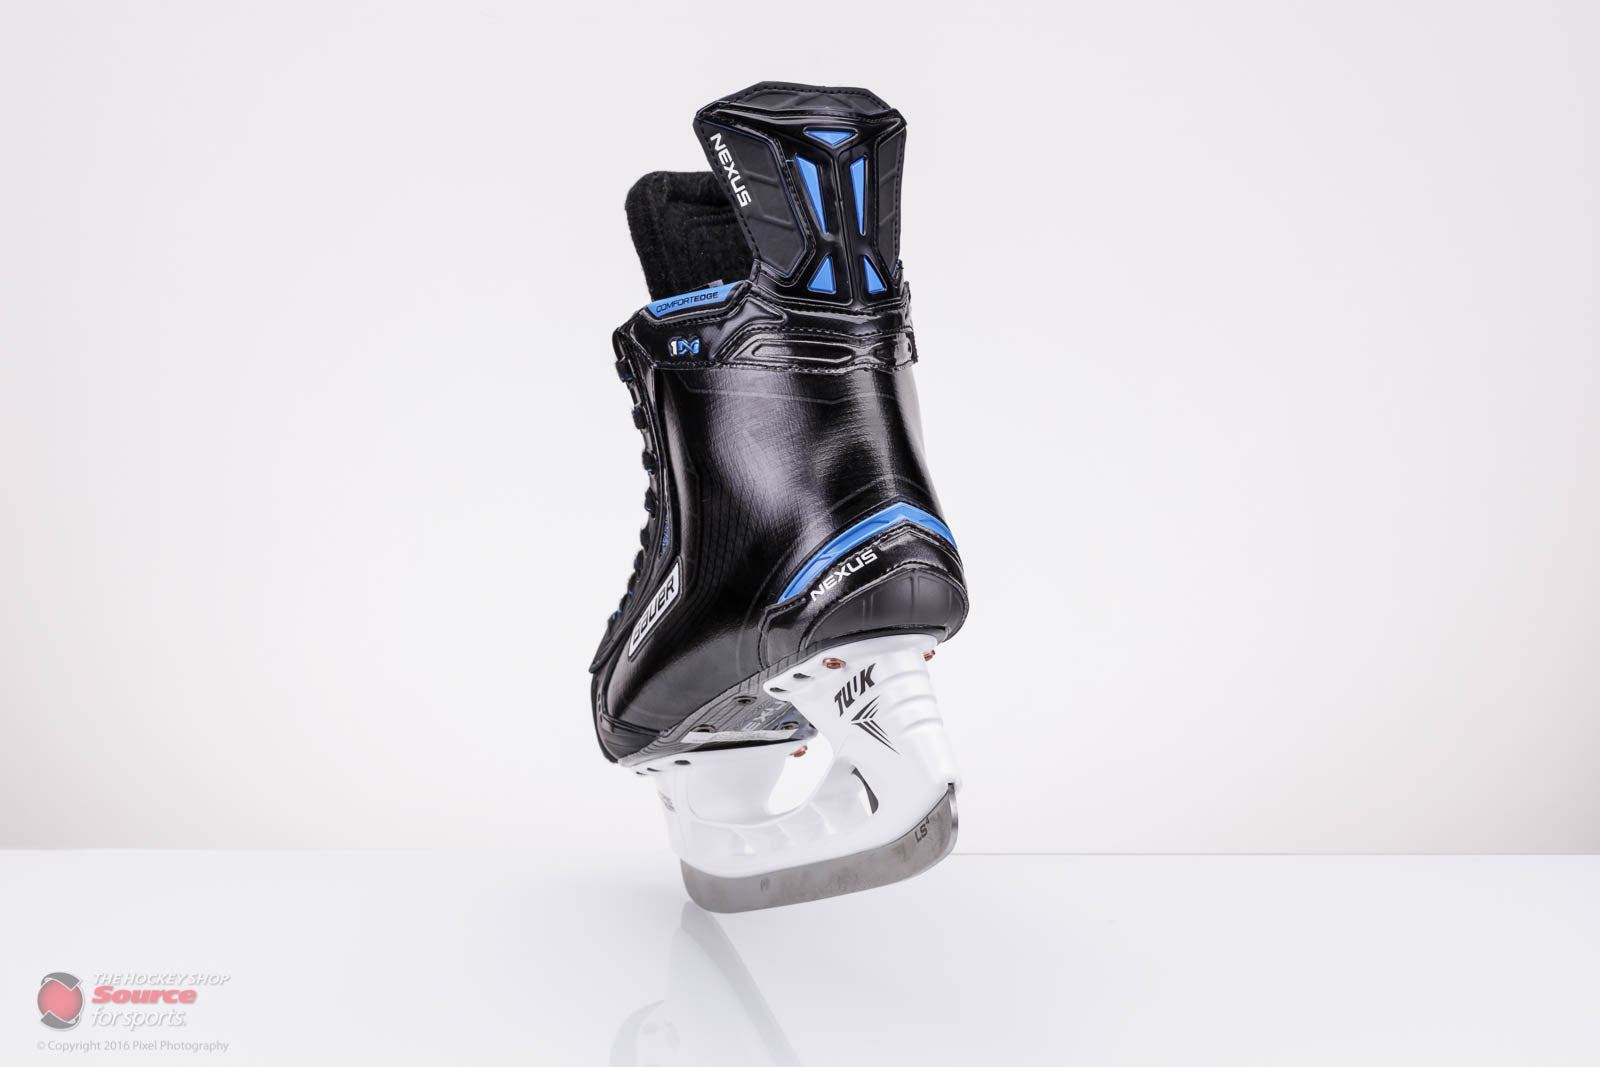 6597d9321fd Bauer Nexus 1N Skate Review – The Hockey Shop Source For Sports